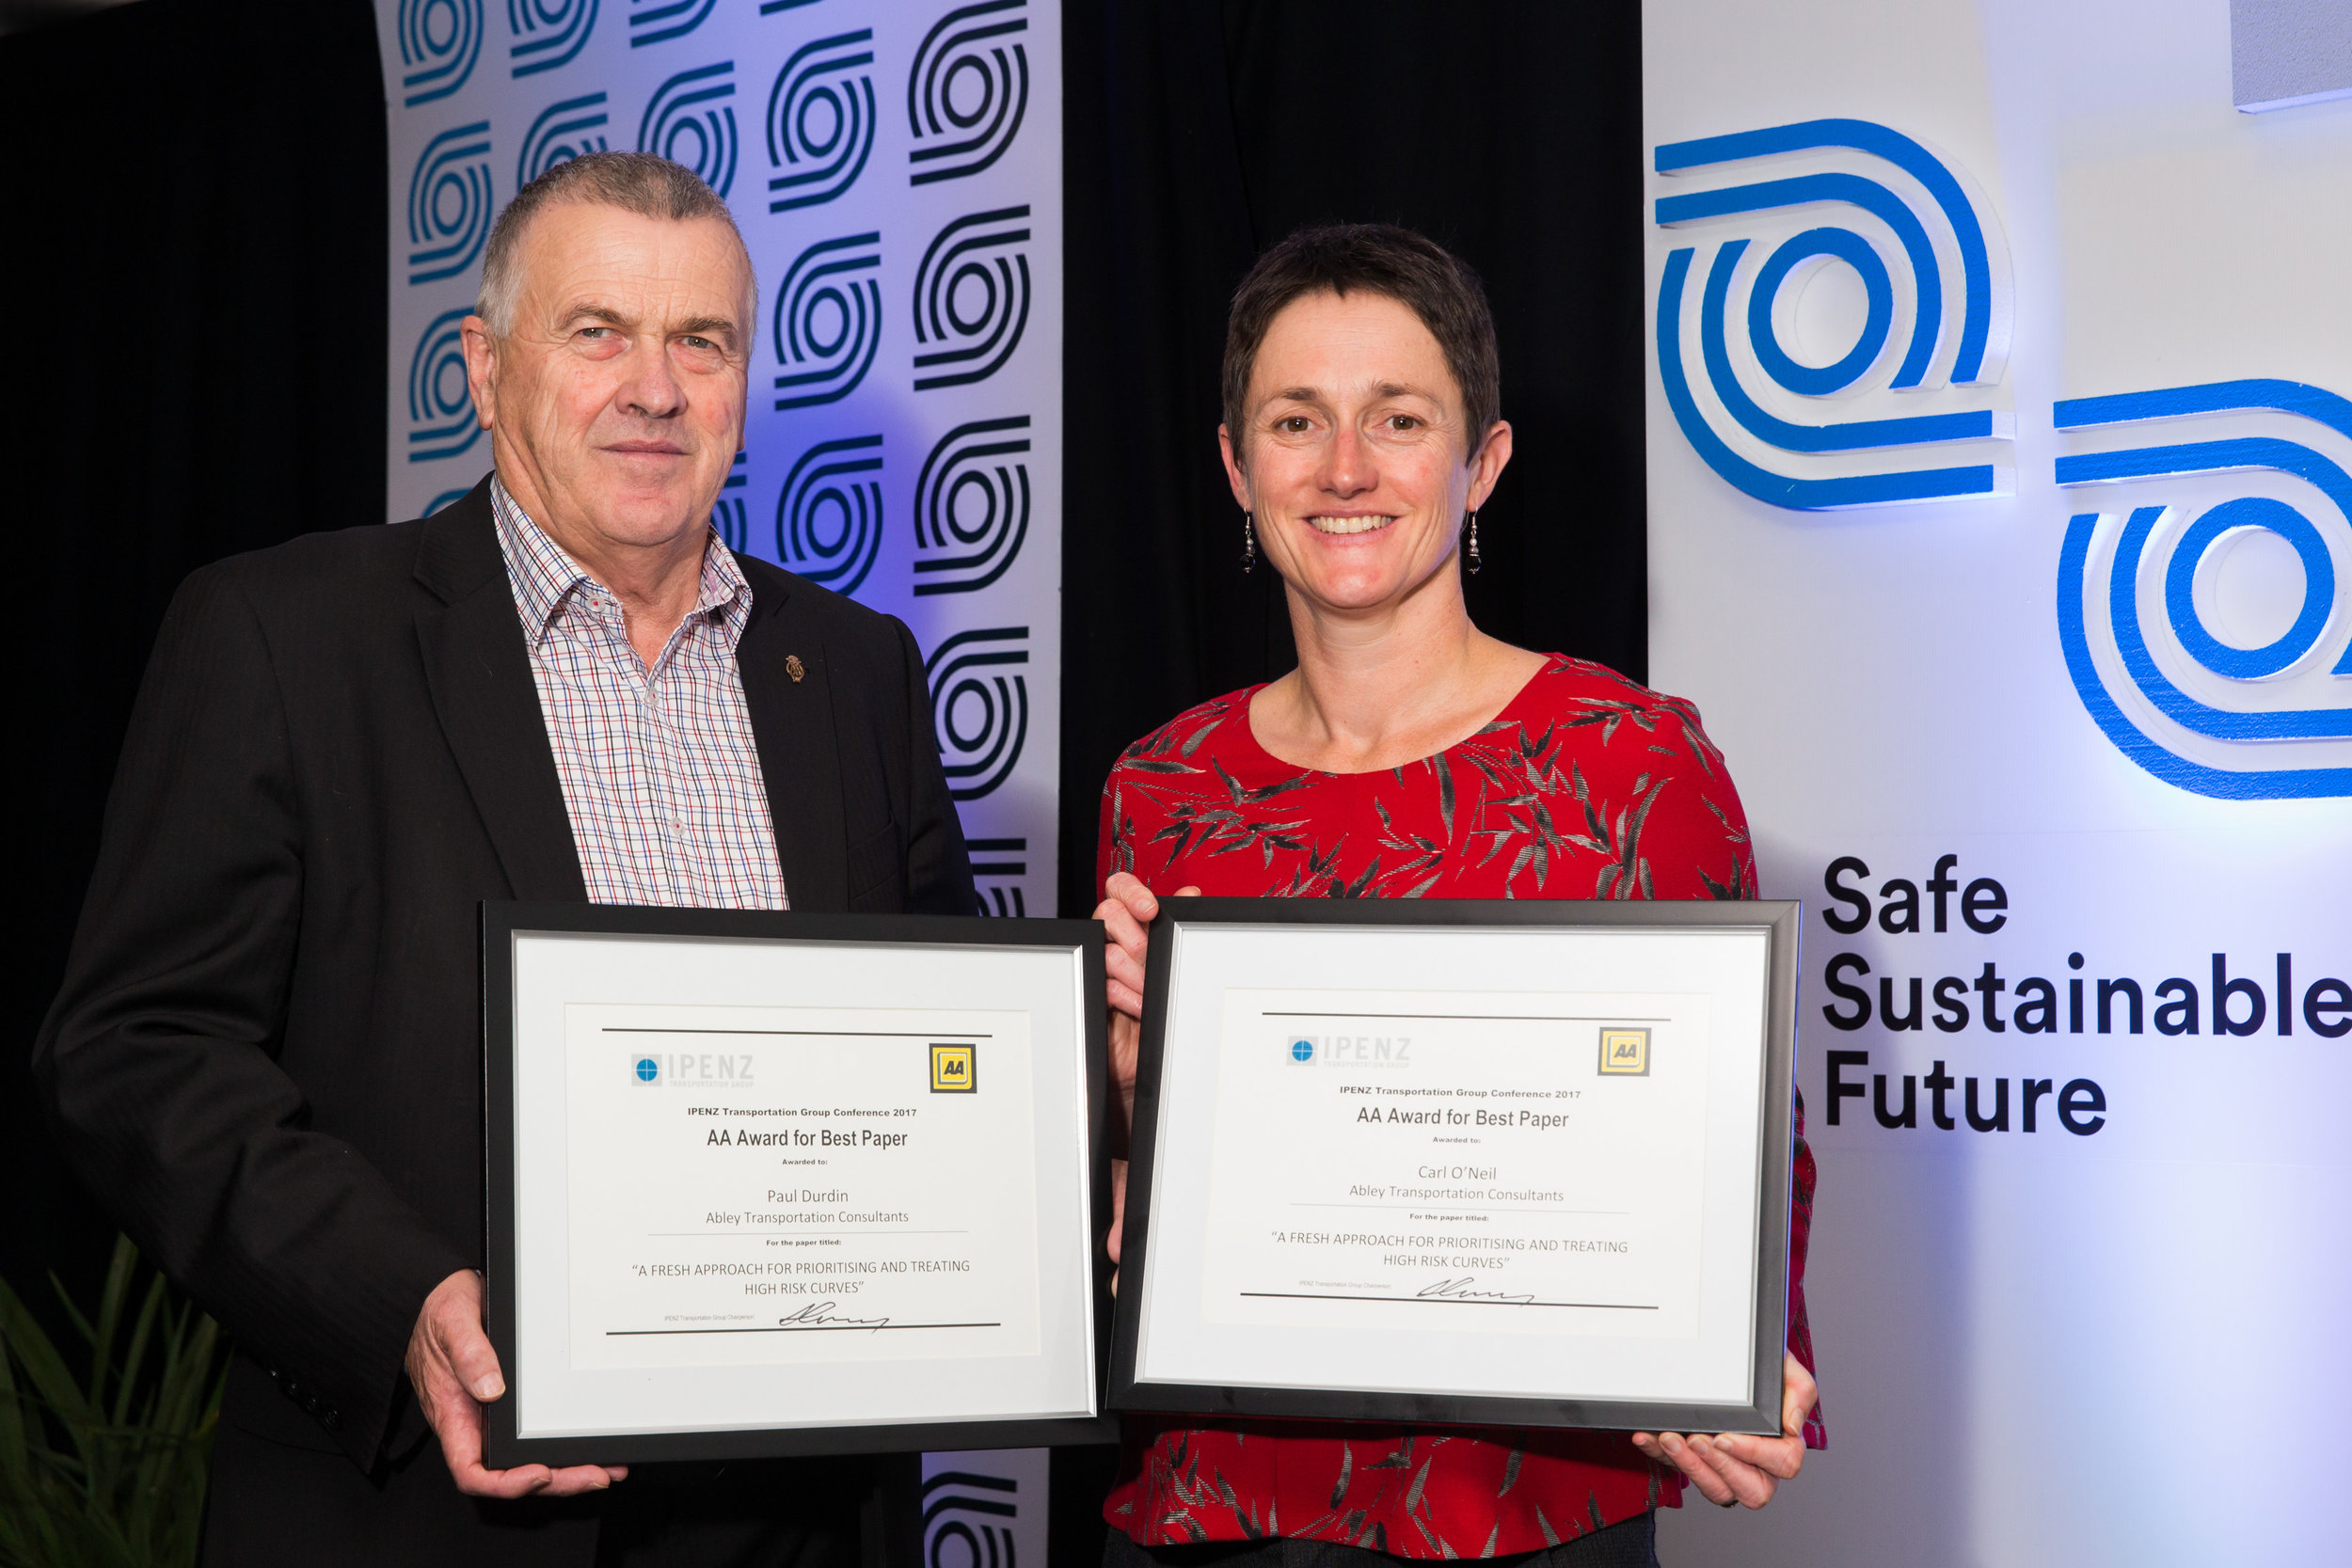 AA Award for Best Conference Paper   - A fresh approach for prioritising and treating high risk curves         Carl O'Neil and Paul Durdin - Abley Transportation ConsultantsRaja Abeysekera - Transport for NSW: Centre for Road Safety  PRESENTED BY TREVOR FOLLOWS, AA